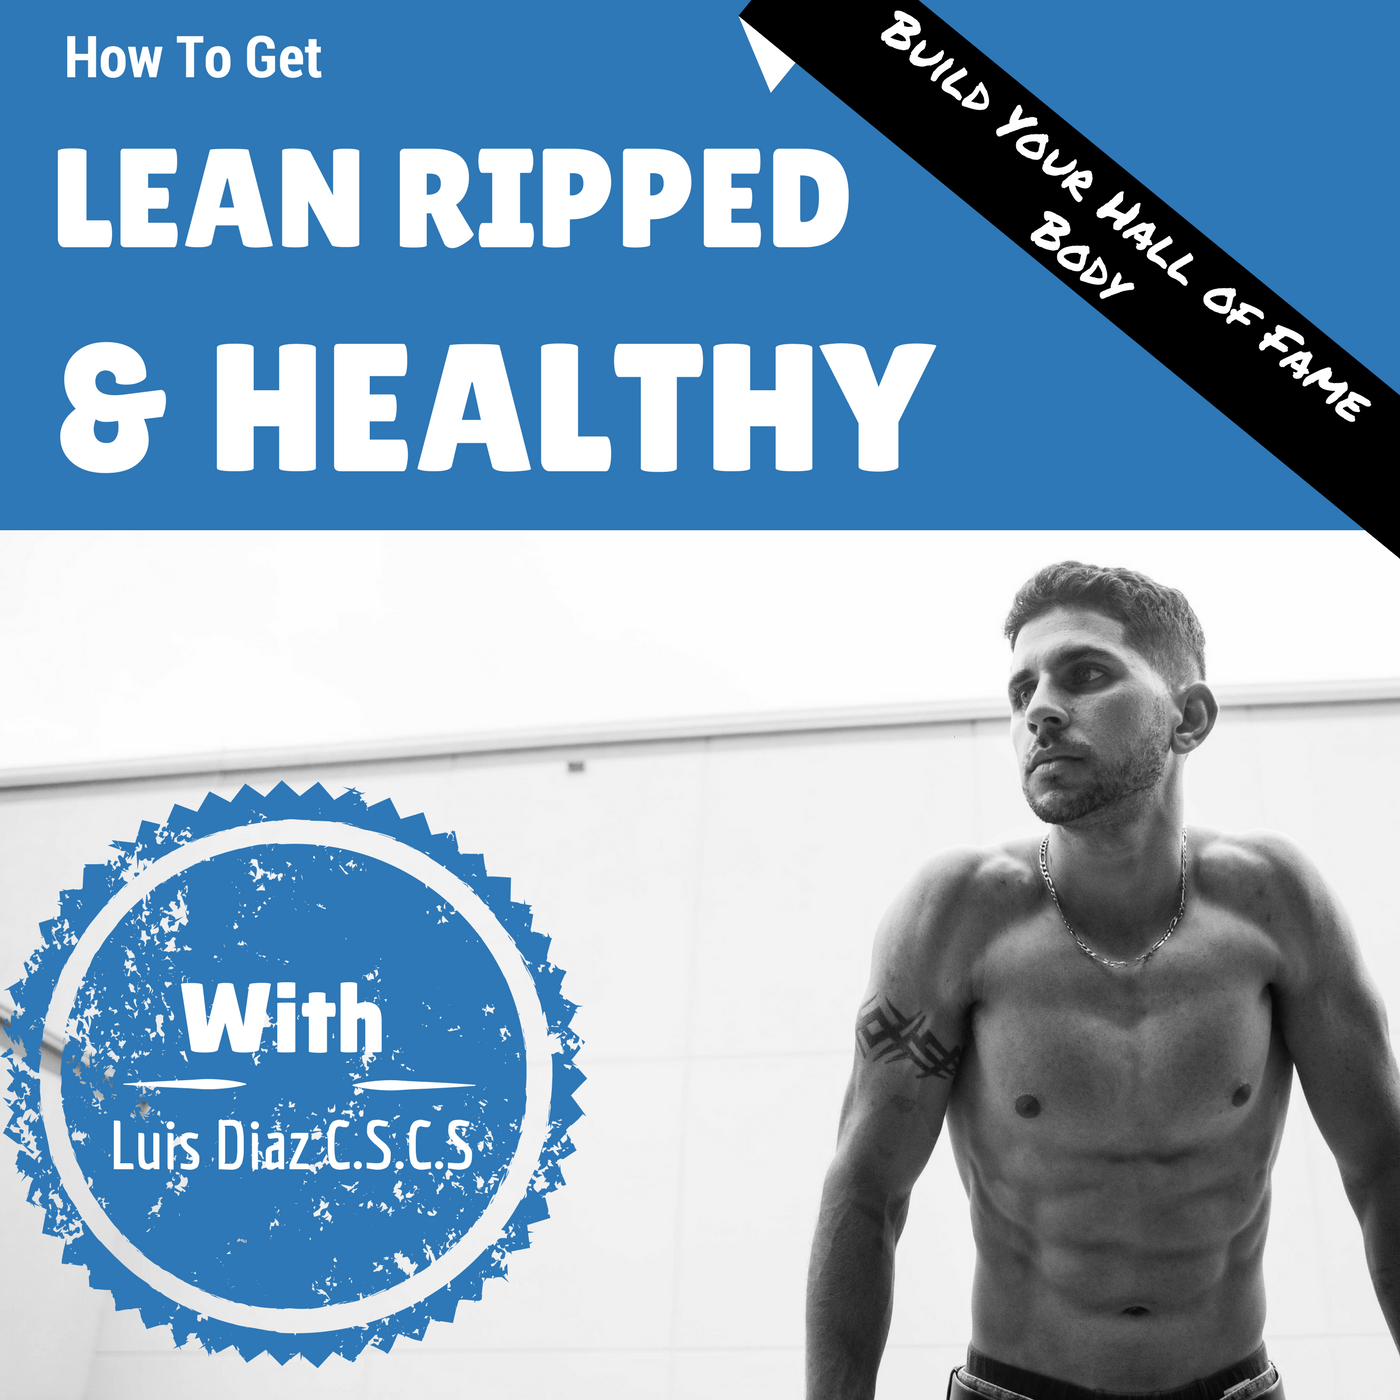 Lean Ripped And Healthy Radio - Get a Six Pack , Feel Healthy, Build Muscle and Strength  logo